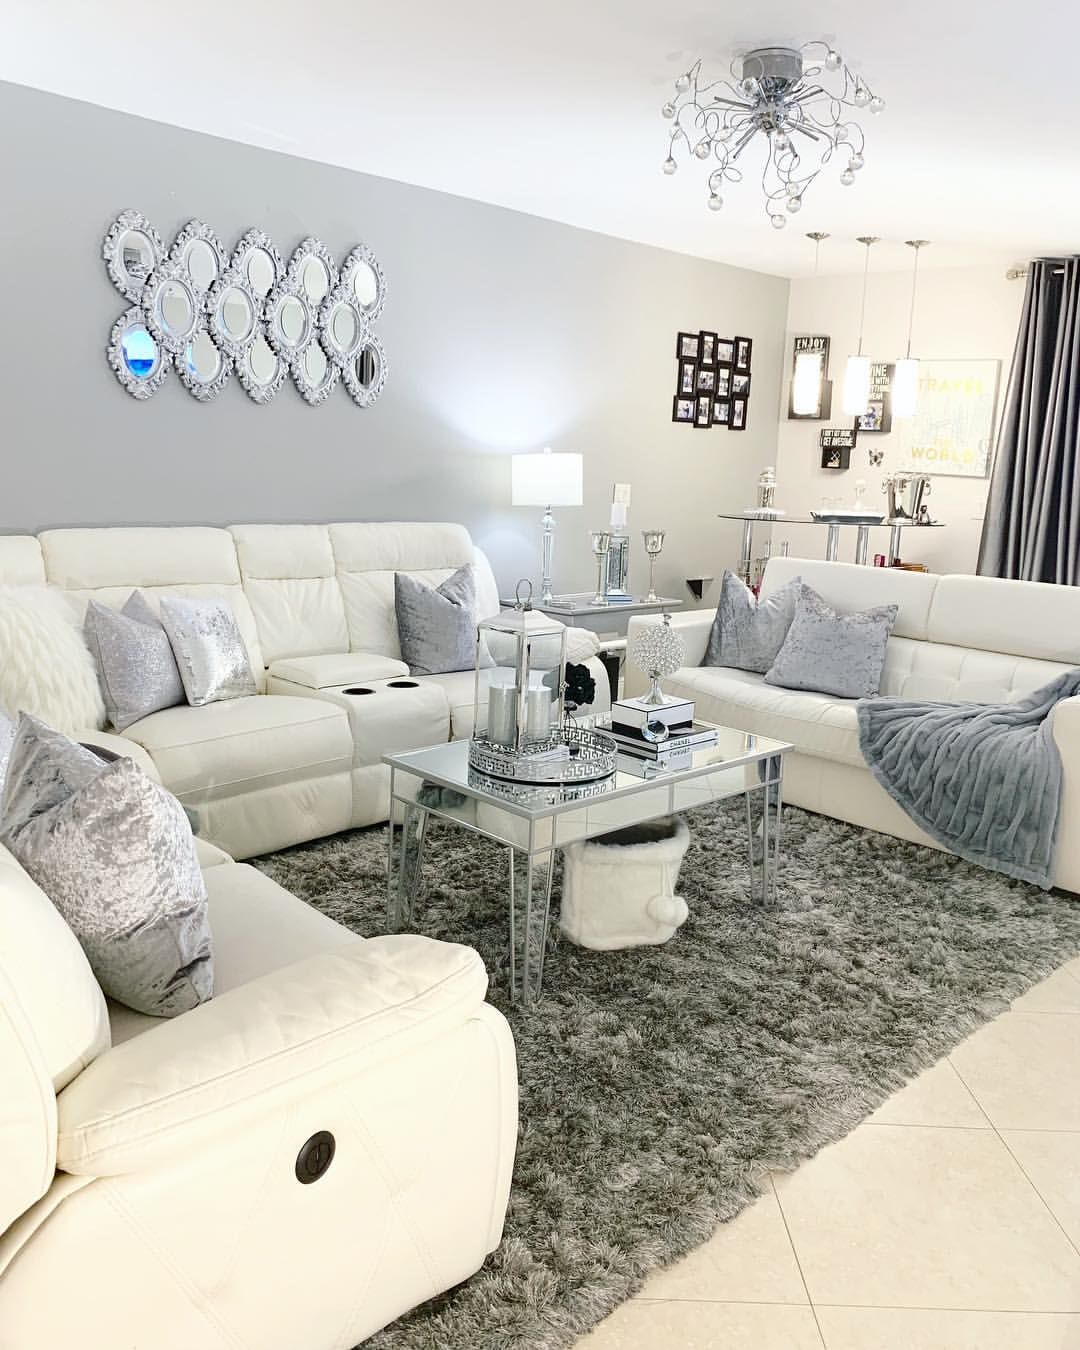 Glam home decor ideas, Luxury living room, silver decor, diy, glam